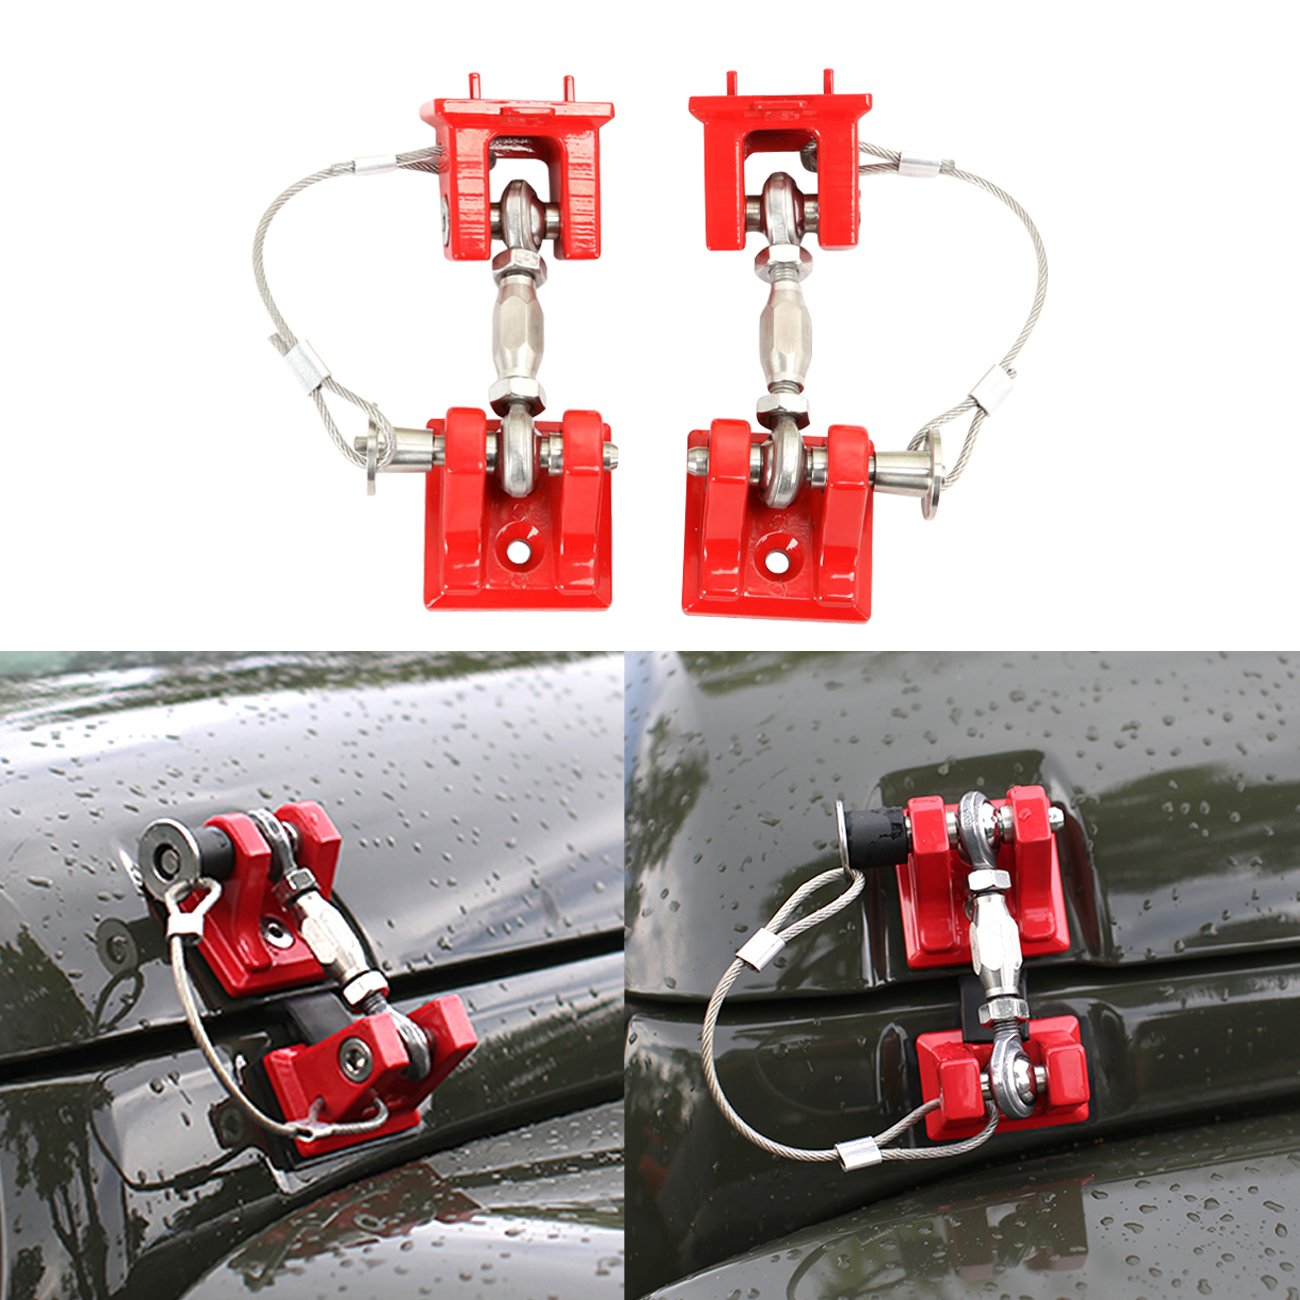 DIYTUNINGS Red Hood Catch Kit Sets Latches Stainless Steel for Jeep Wrangler 2007-2017 JK & Unlimited - Pair